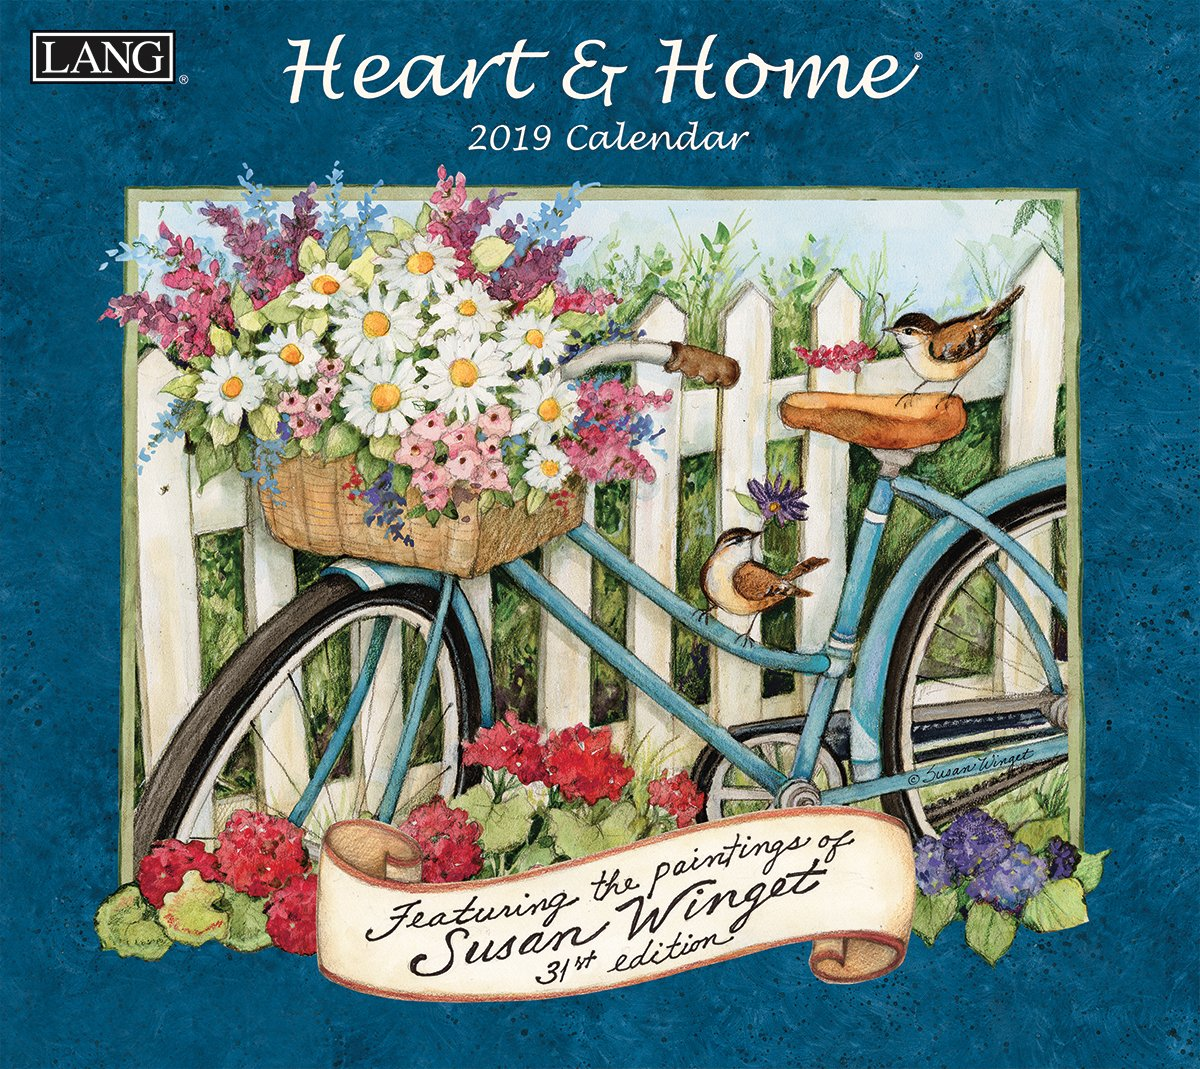 The LANG Companies Heart & Home 2019 Wall Calendar (19991001913) by The LANG Companies